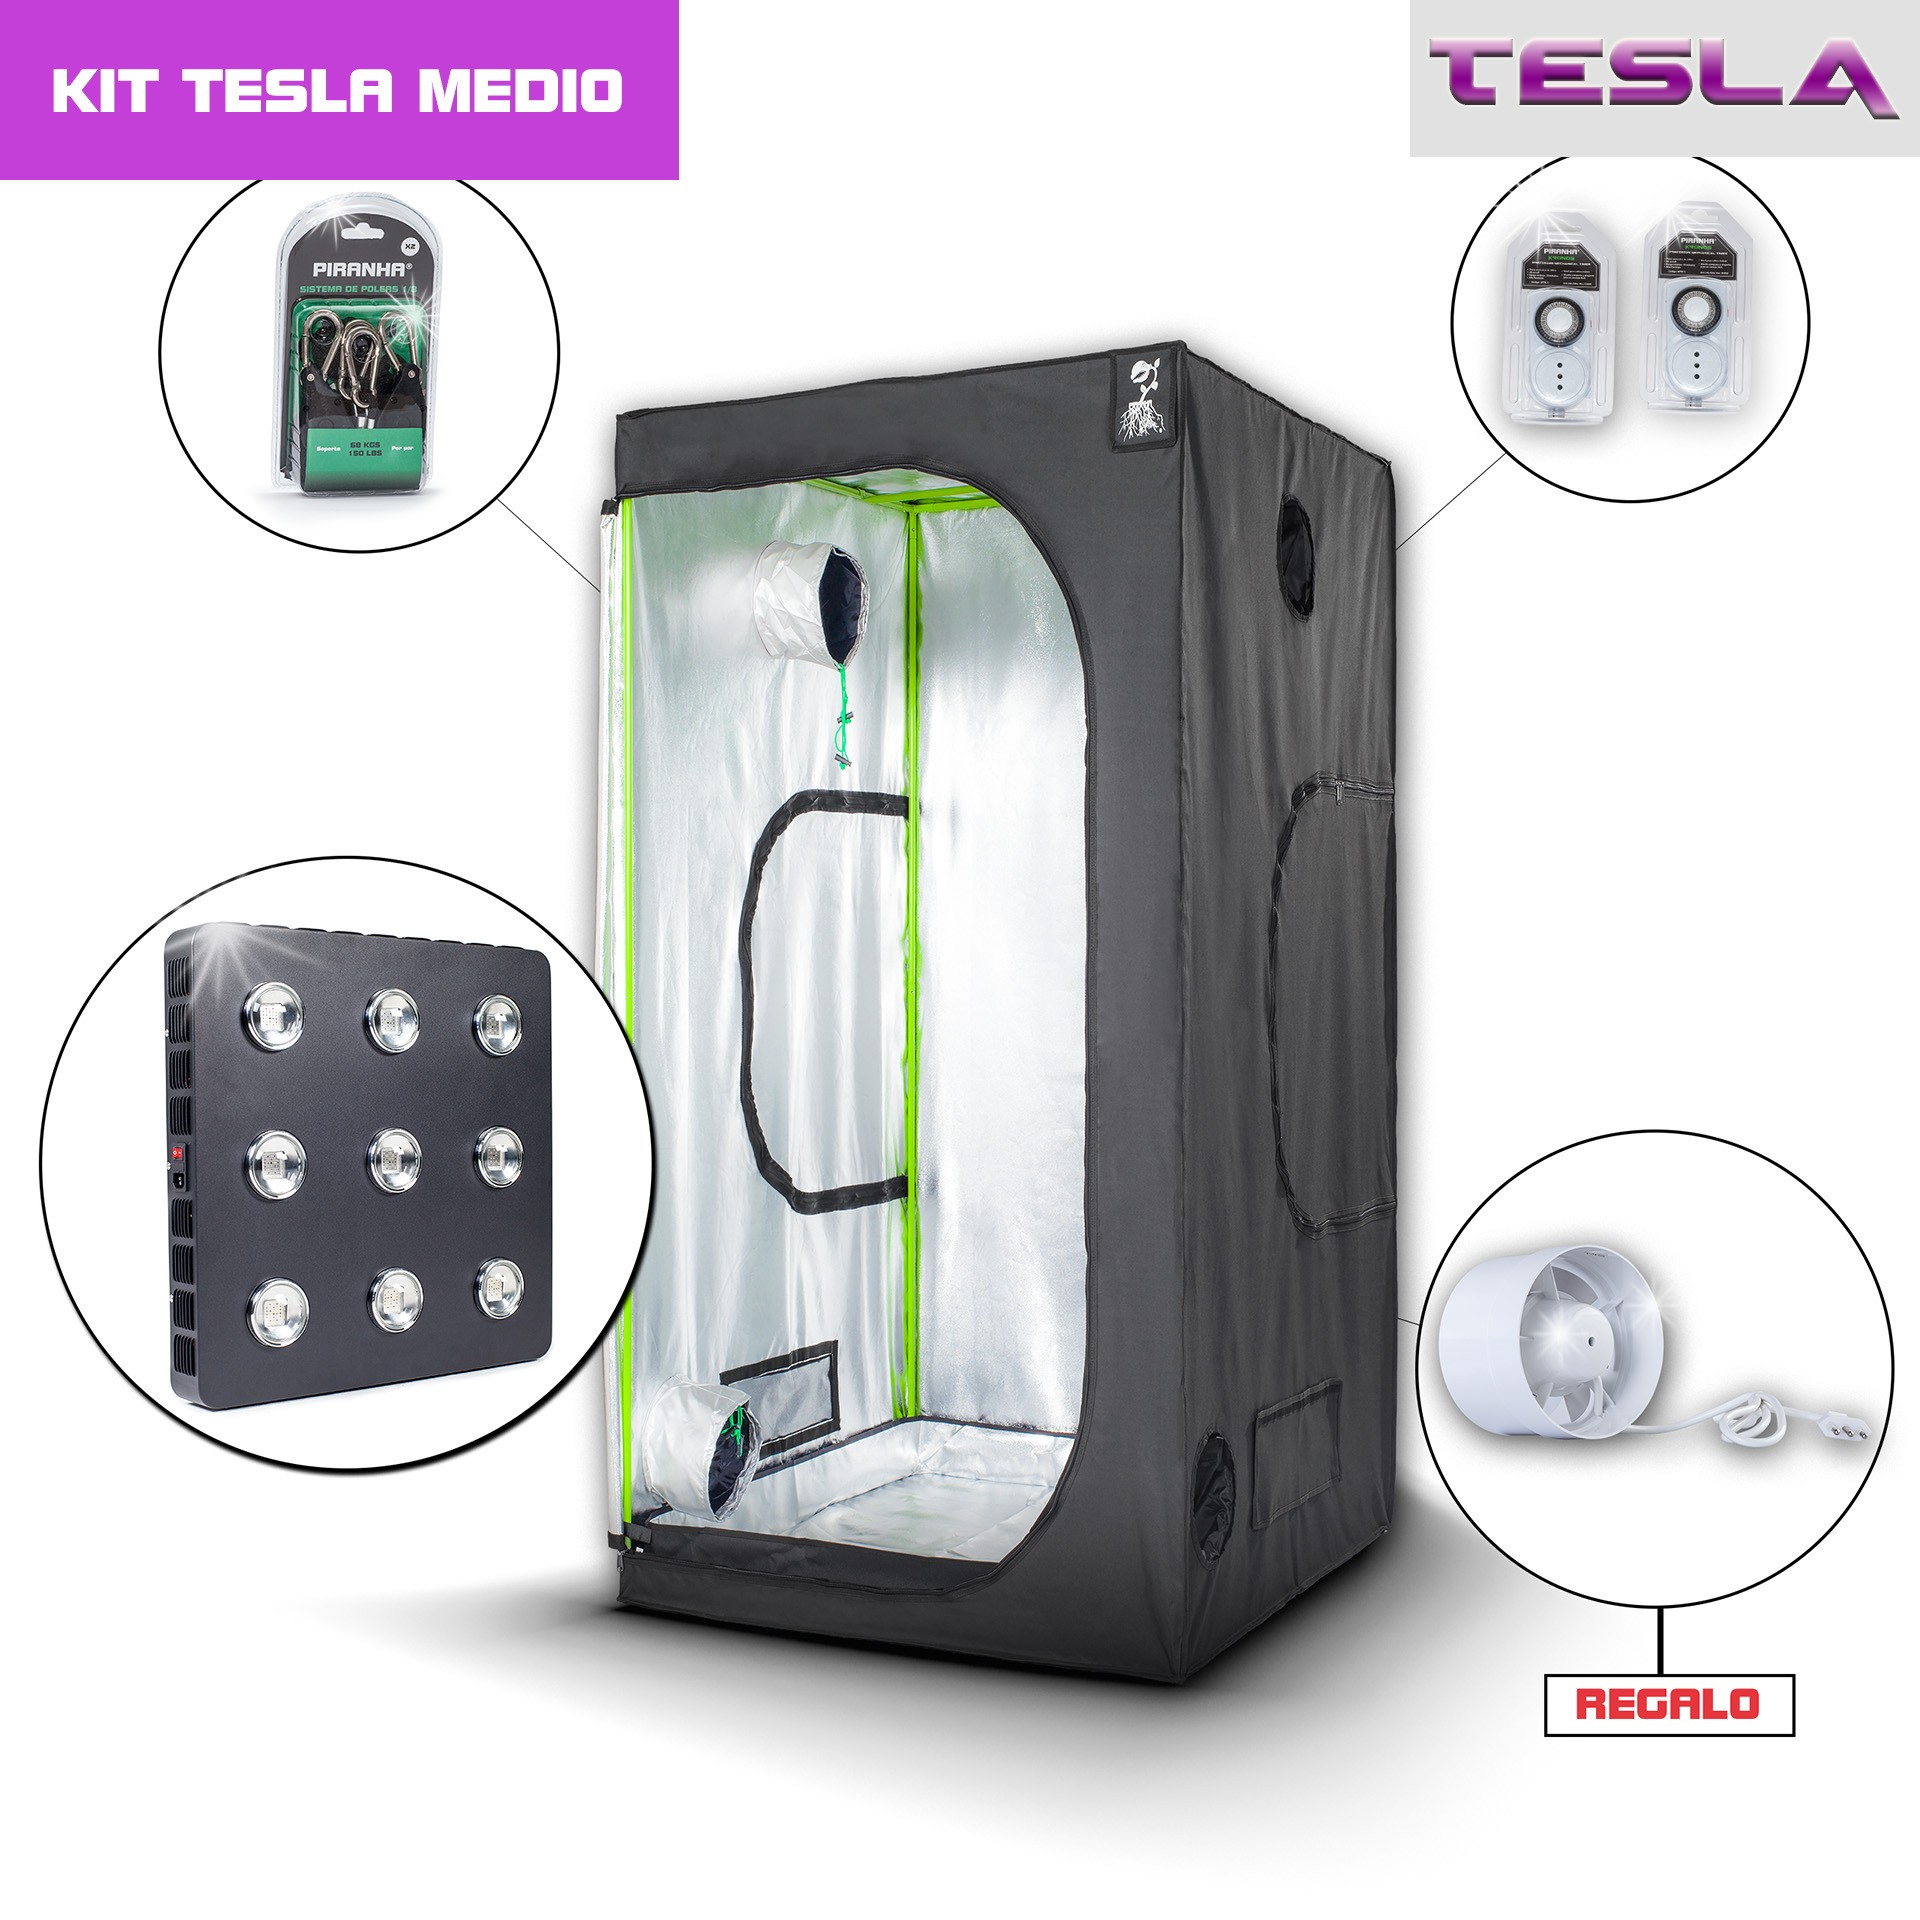 Kit Tesla 100 - T810W Medio